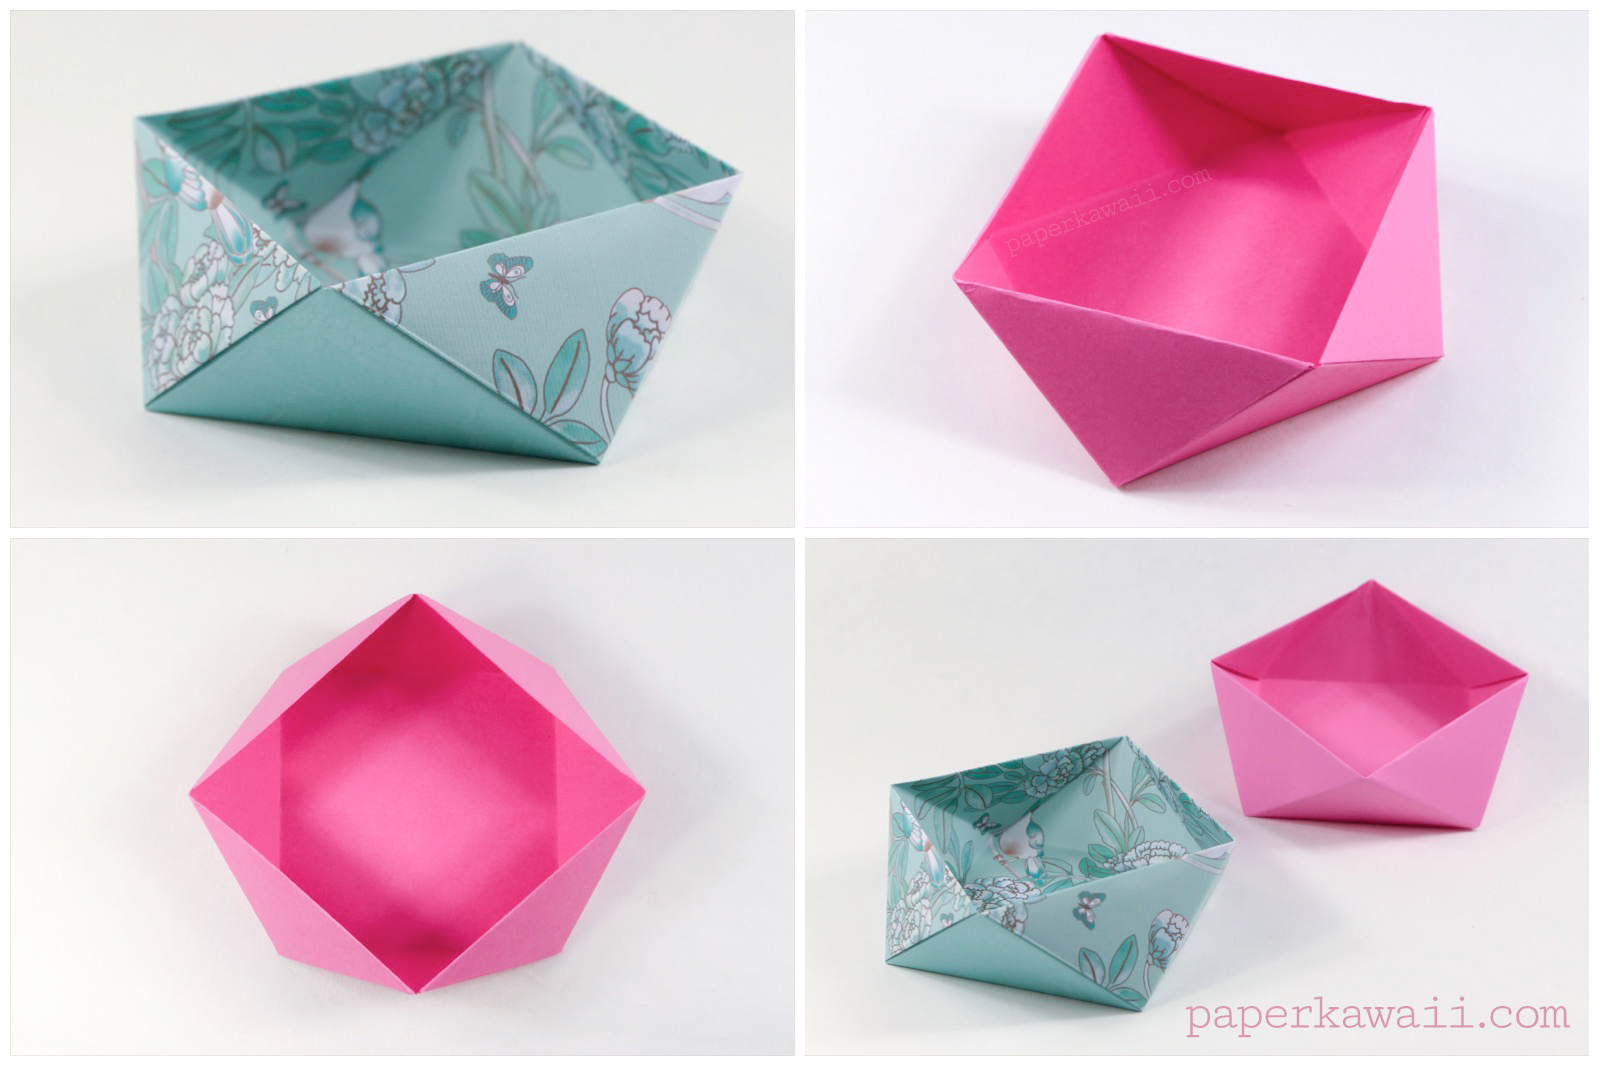 A Photo Tutorial Is Available On The Origami Tutorials Page Traditional Square Bowl Box Instructions